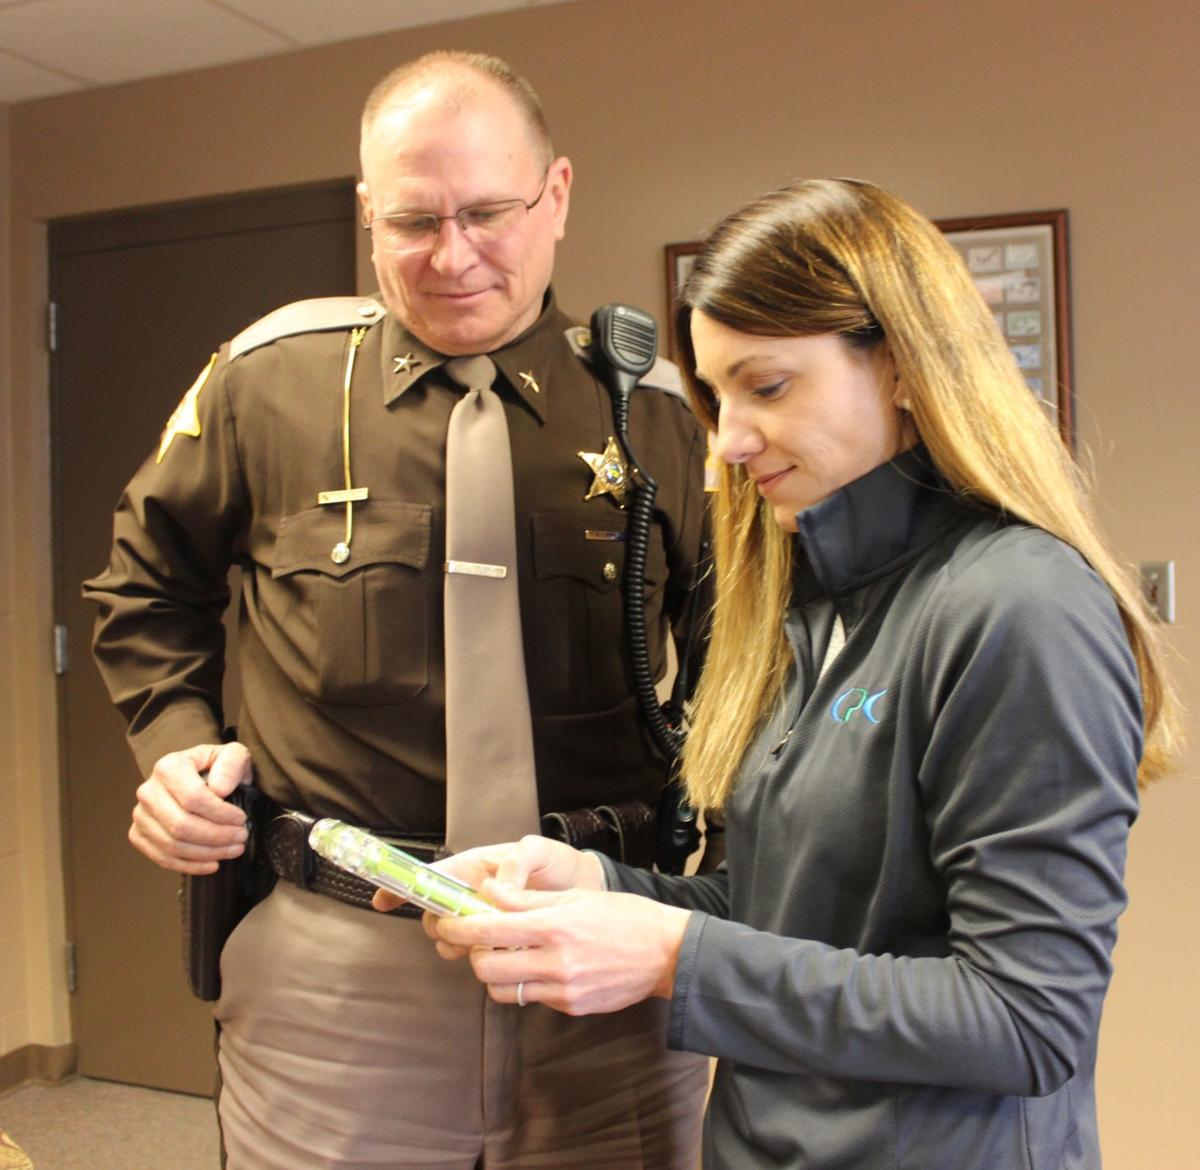 where r u? — jail: Noble County goes live with texting devices for